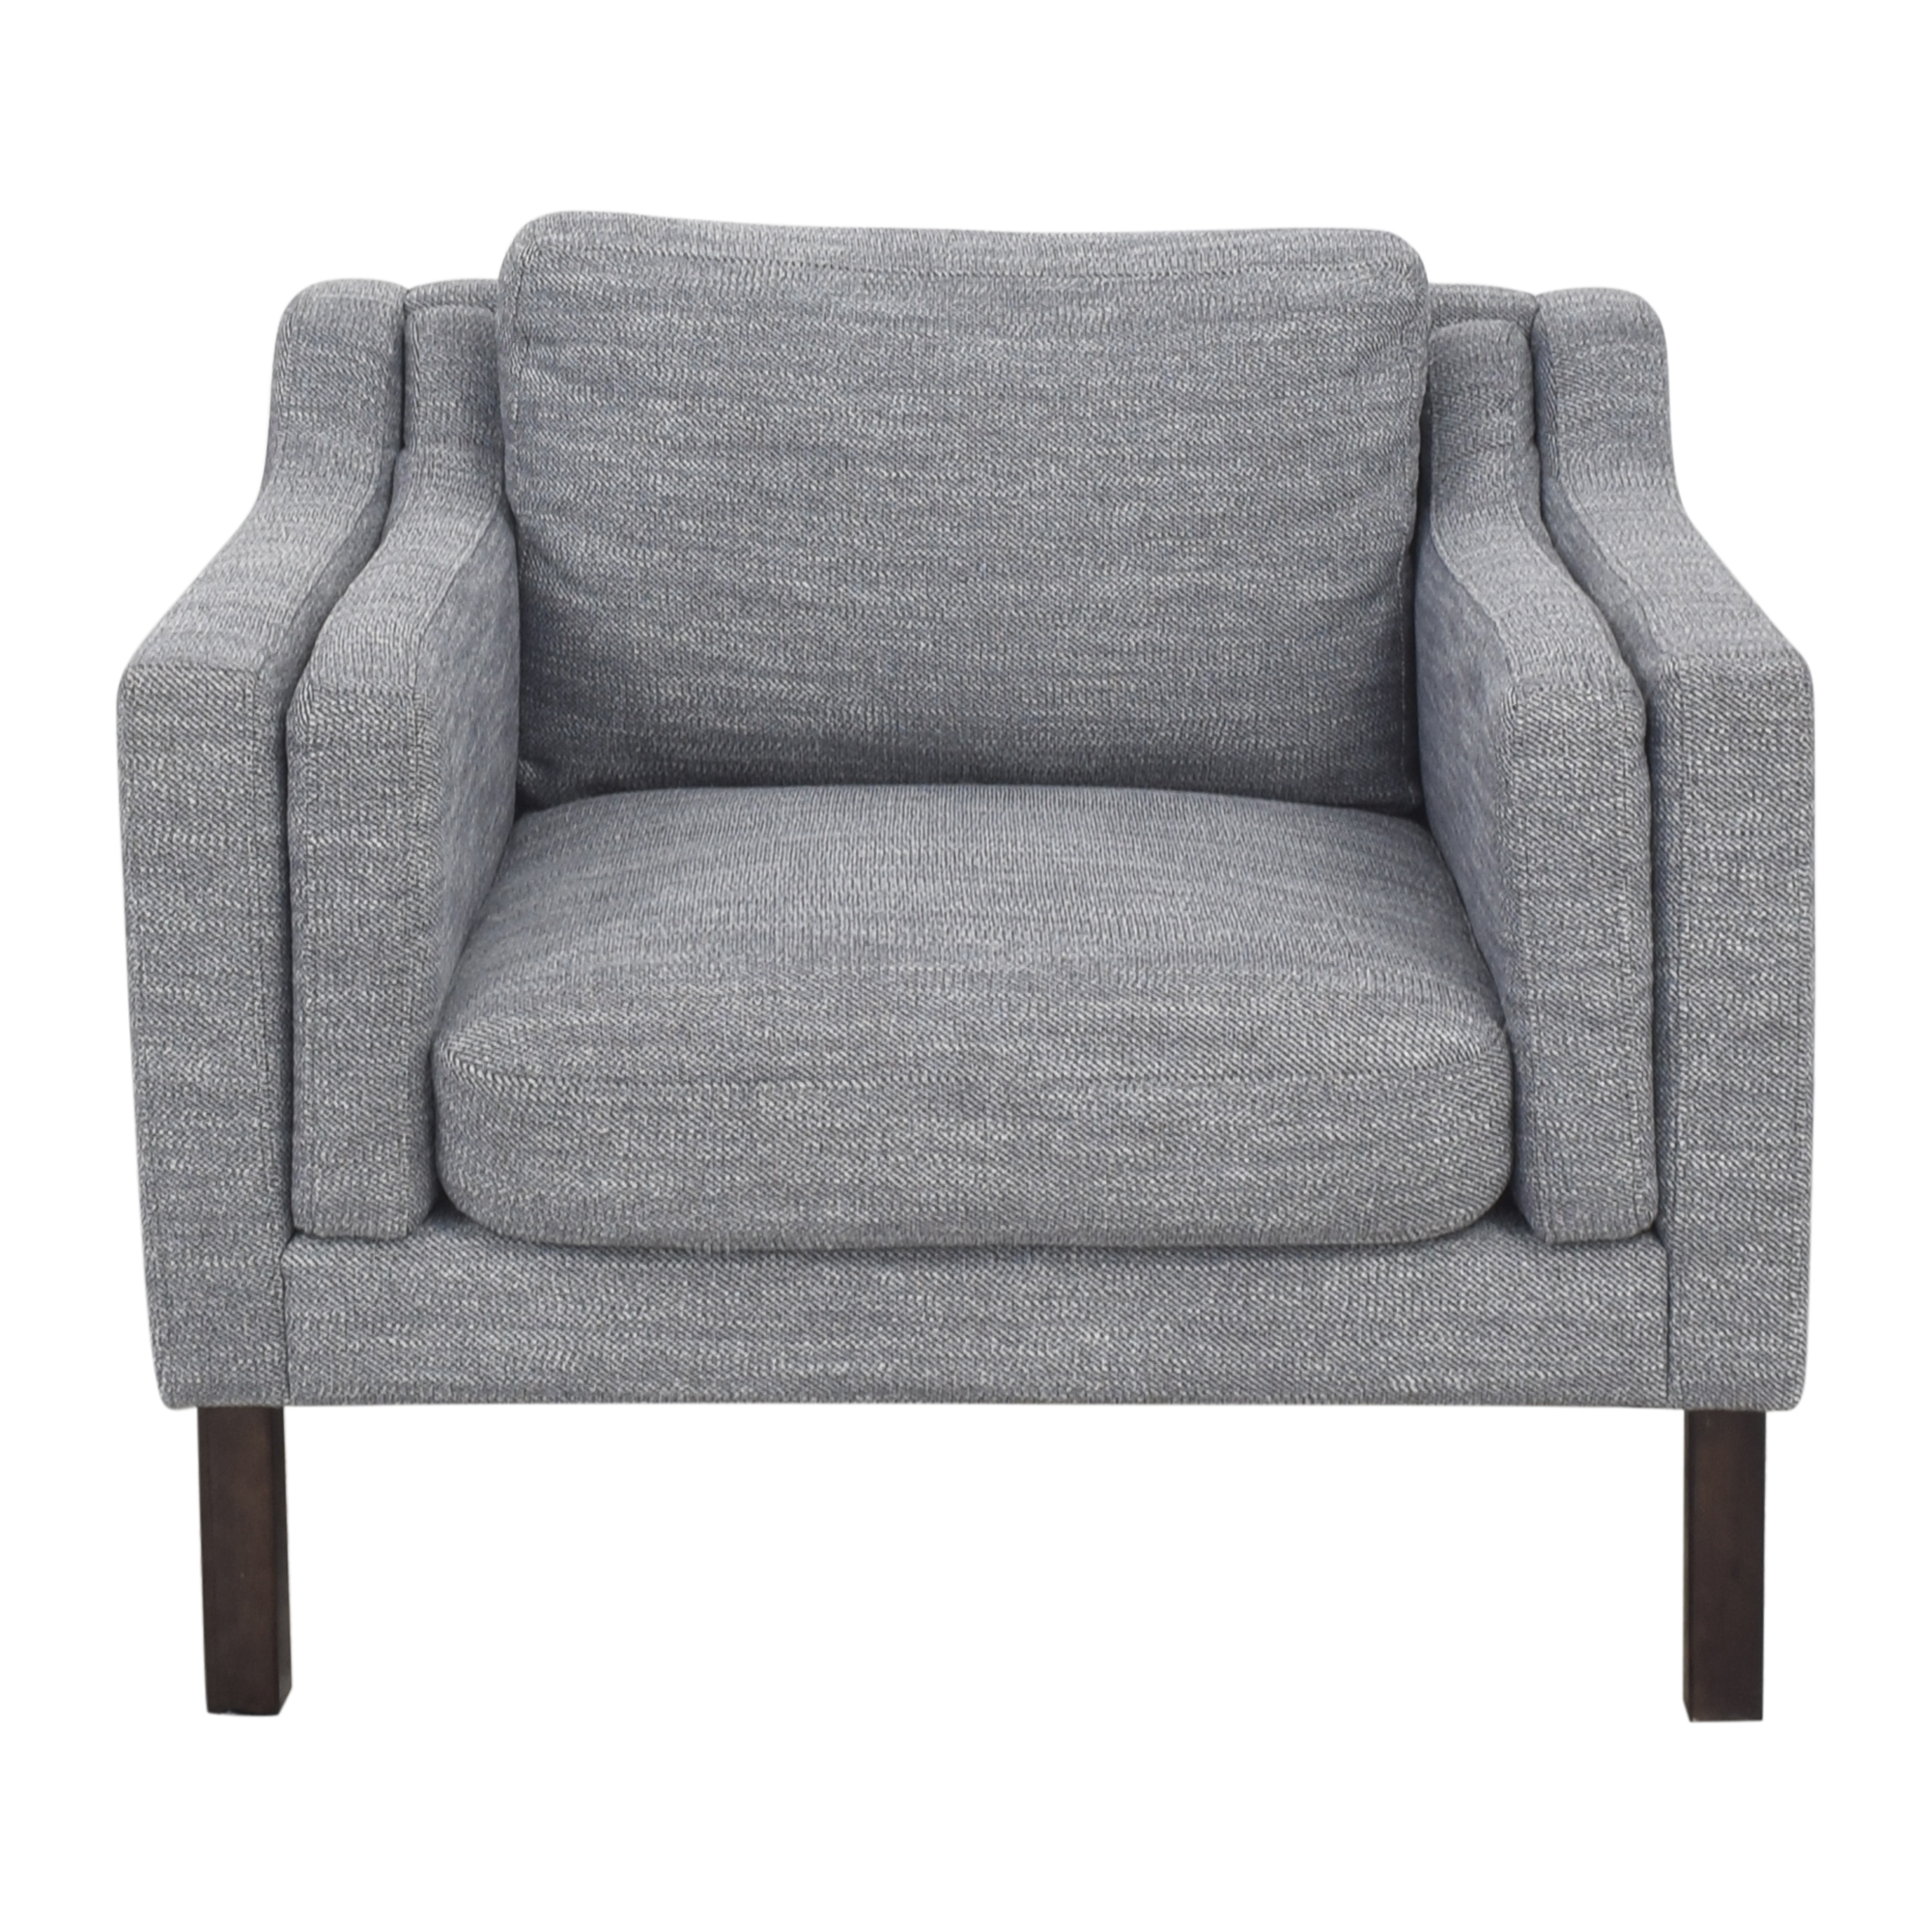 Kardiel Kardiel Monroe Chair coupon